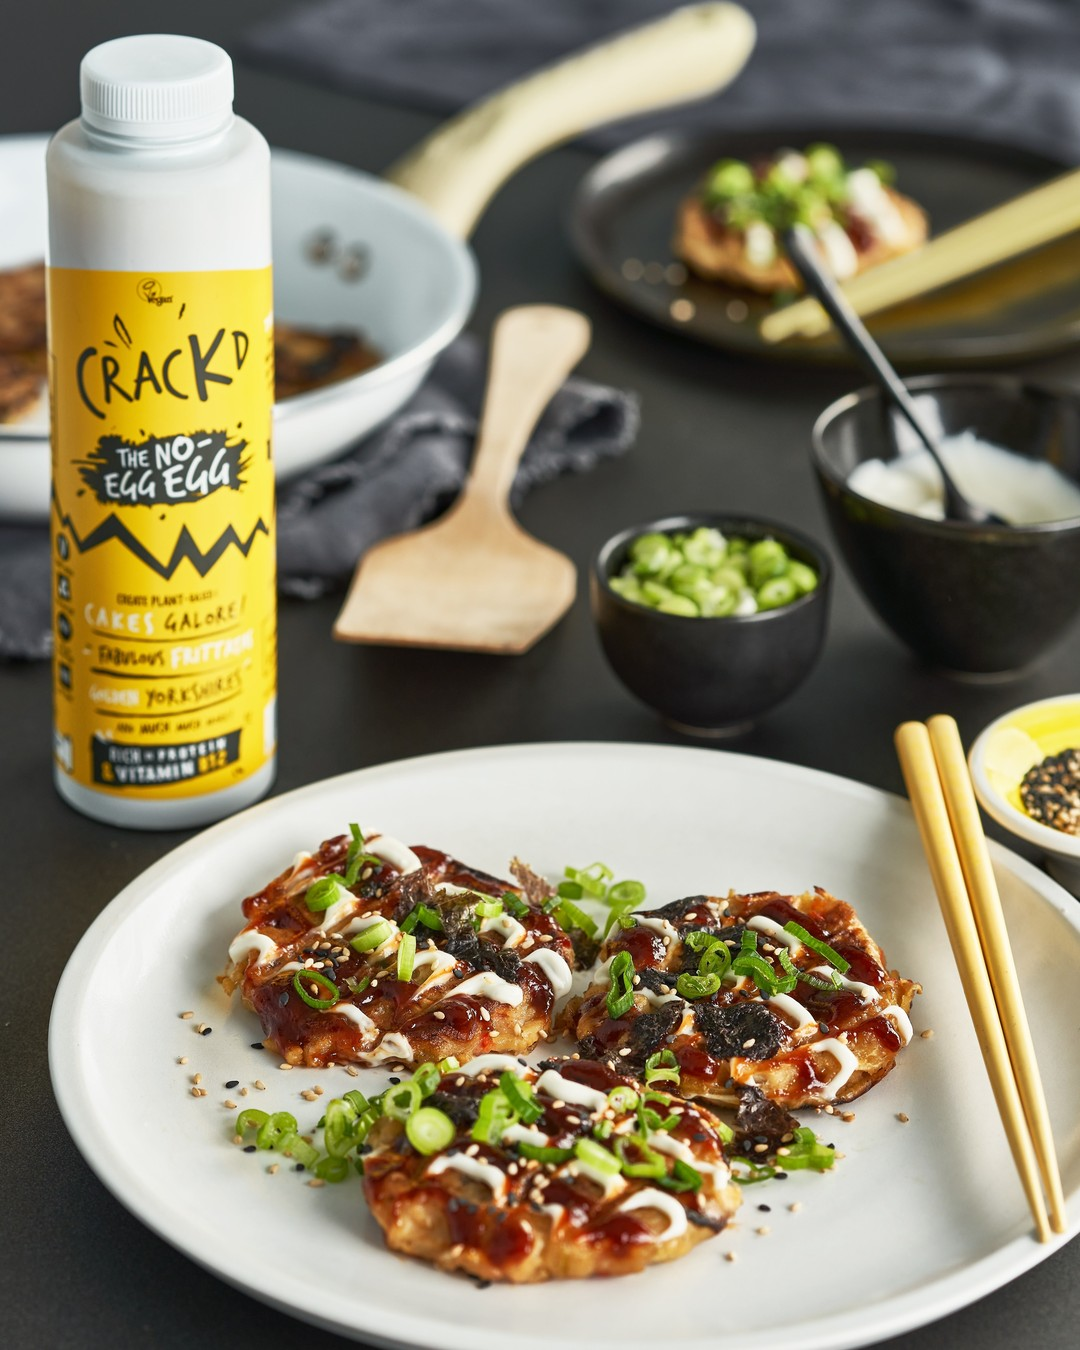 Hold up a minute...is that Japanese Okonomiyaki? And it is made with Crackd? And so it is vegan and delicious?? Tooooooooooo right it is! and you can make it yourself with the recipe on our website😏